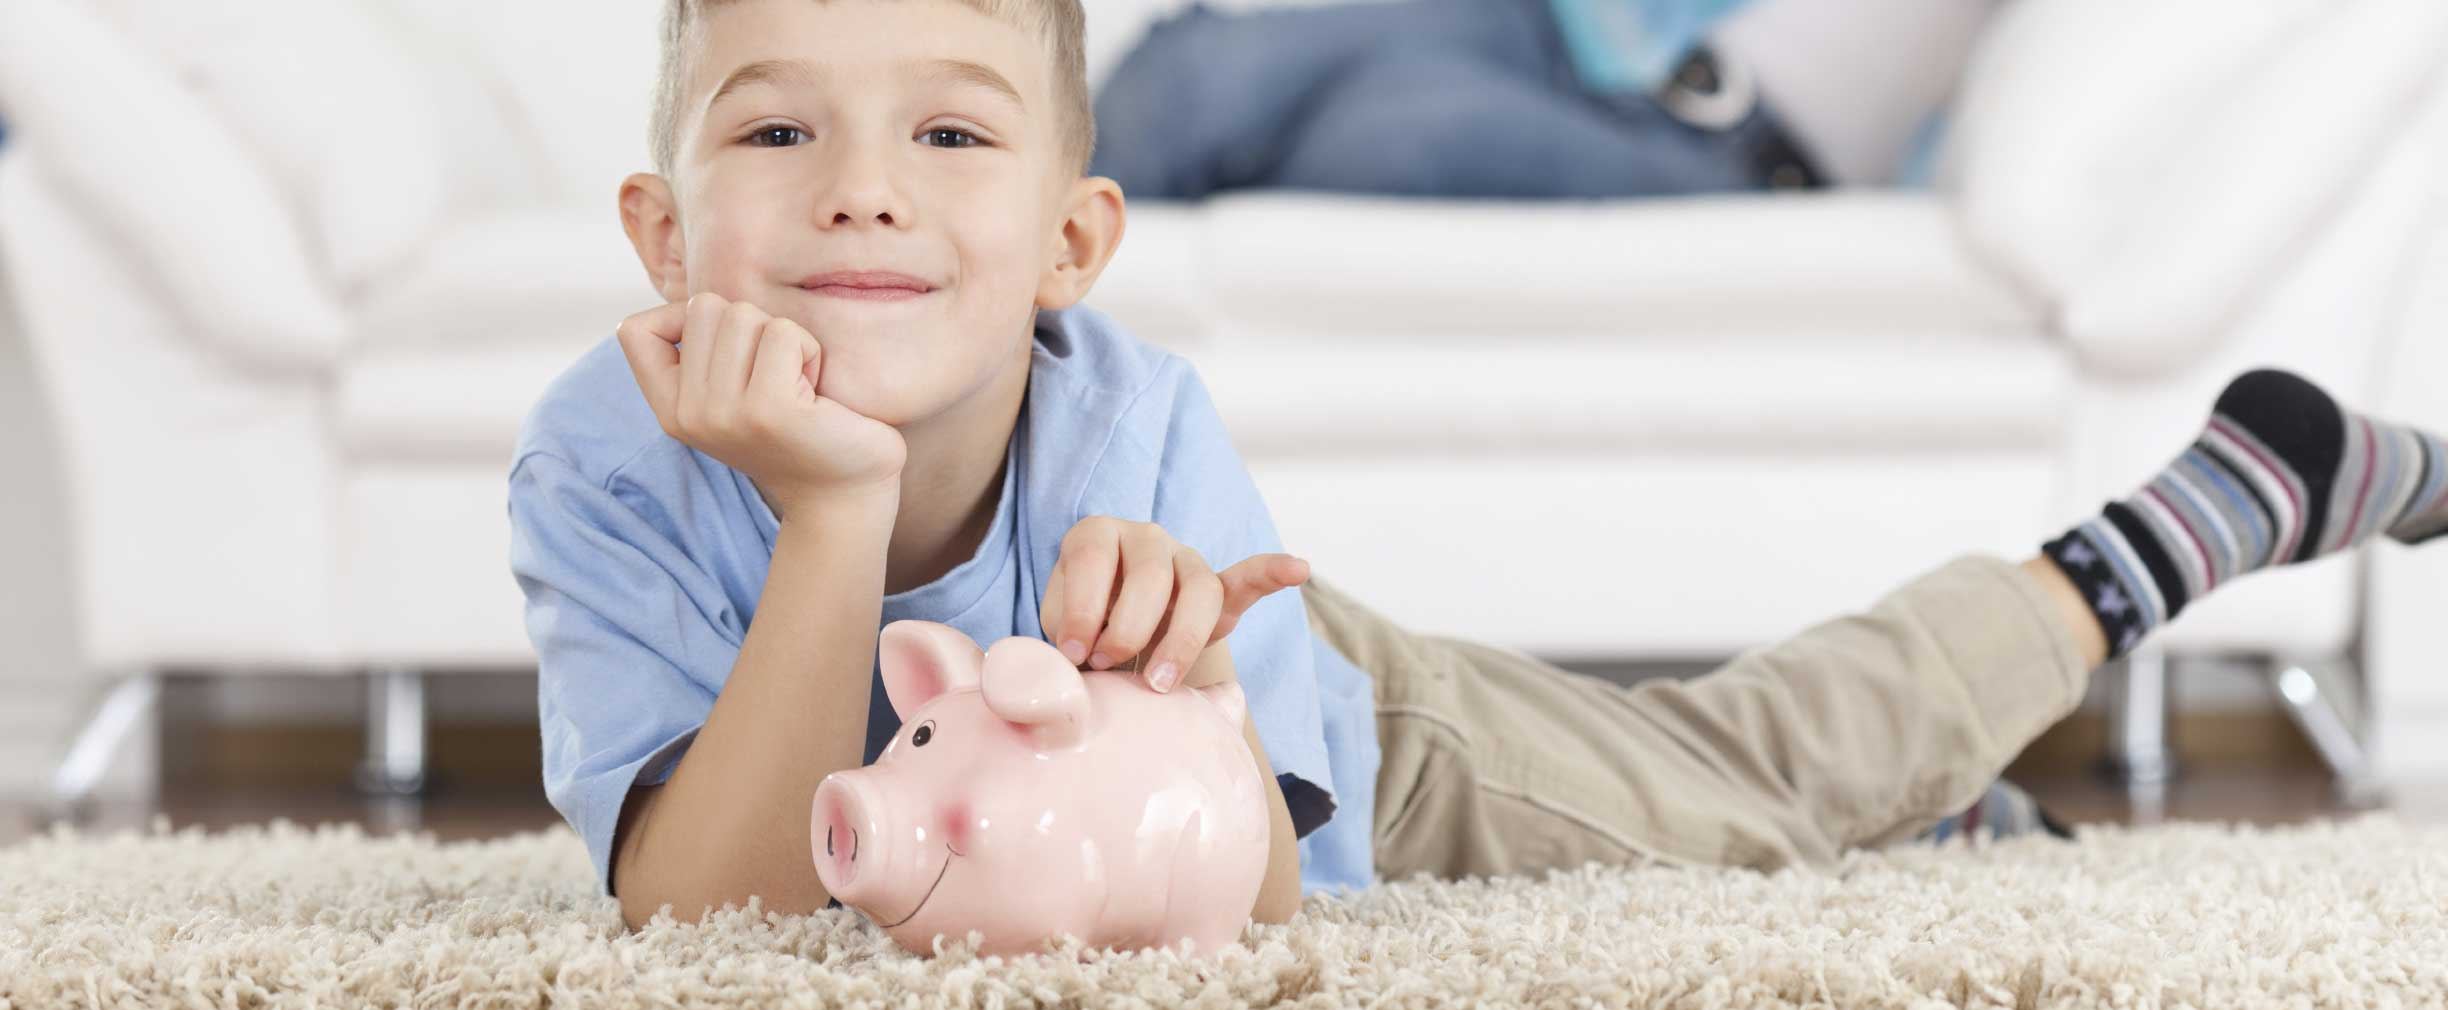 5 Creative Ways to Save for a Child's College Education